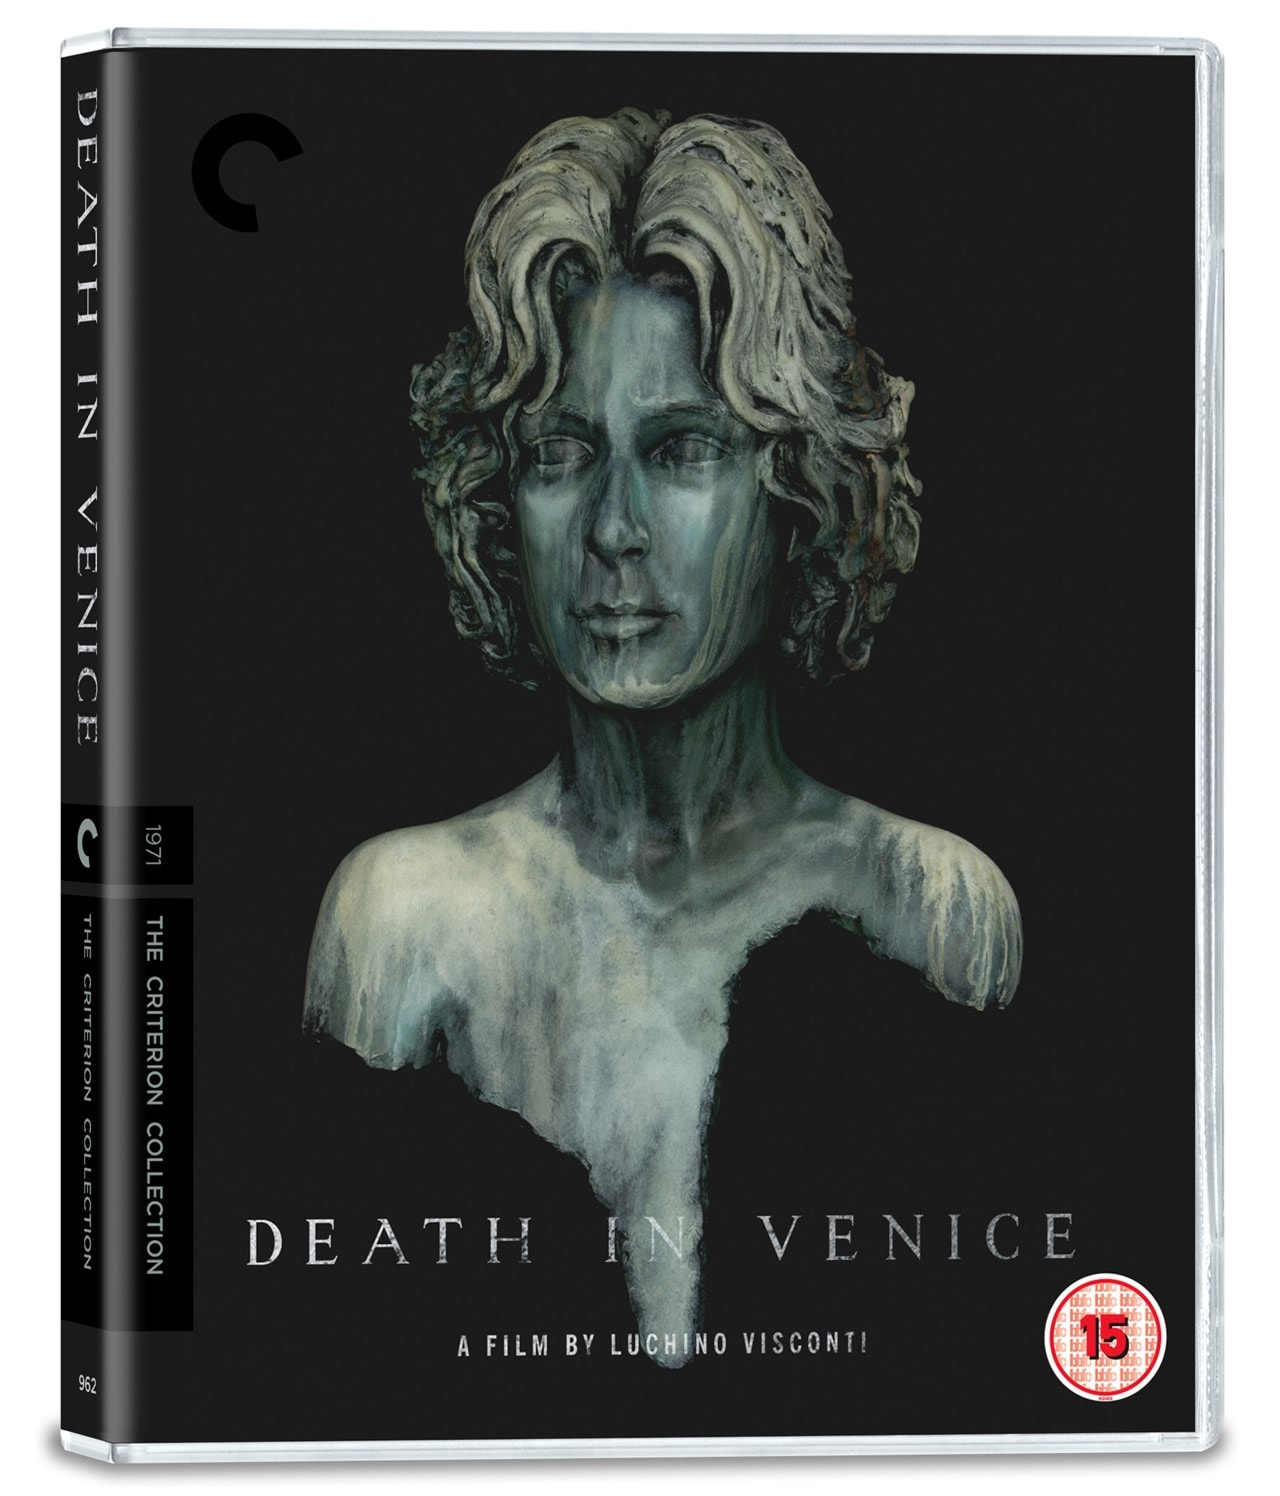 Death in Venice - The Criterion Collection - 2